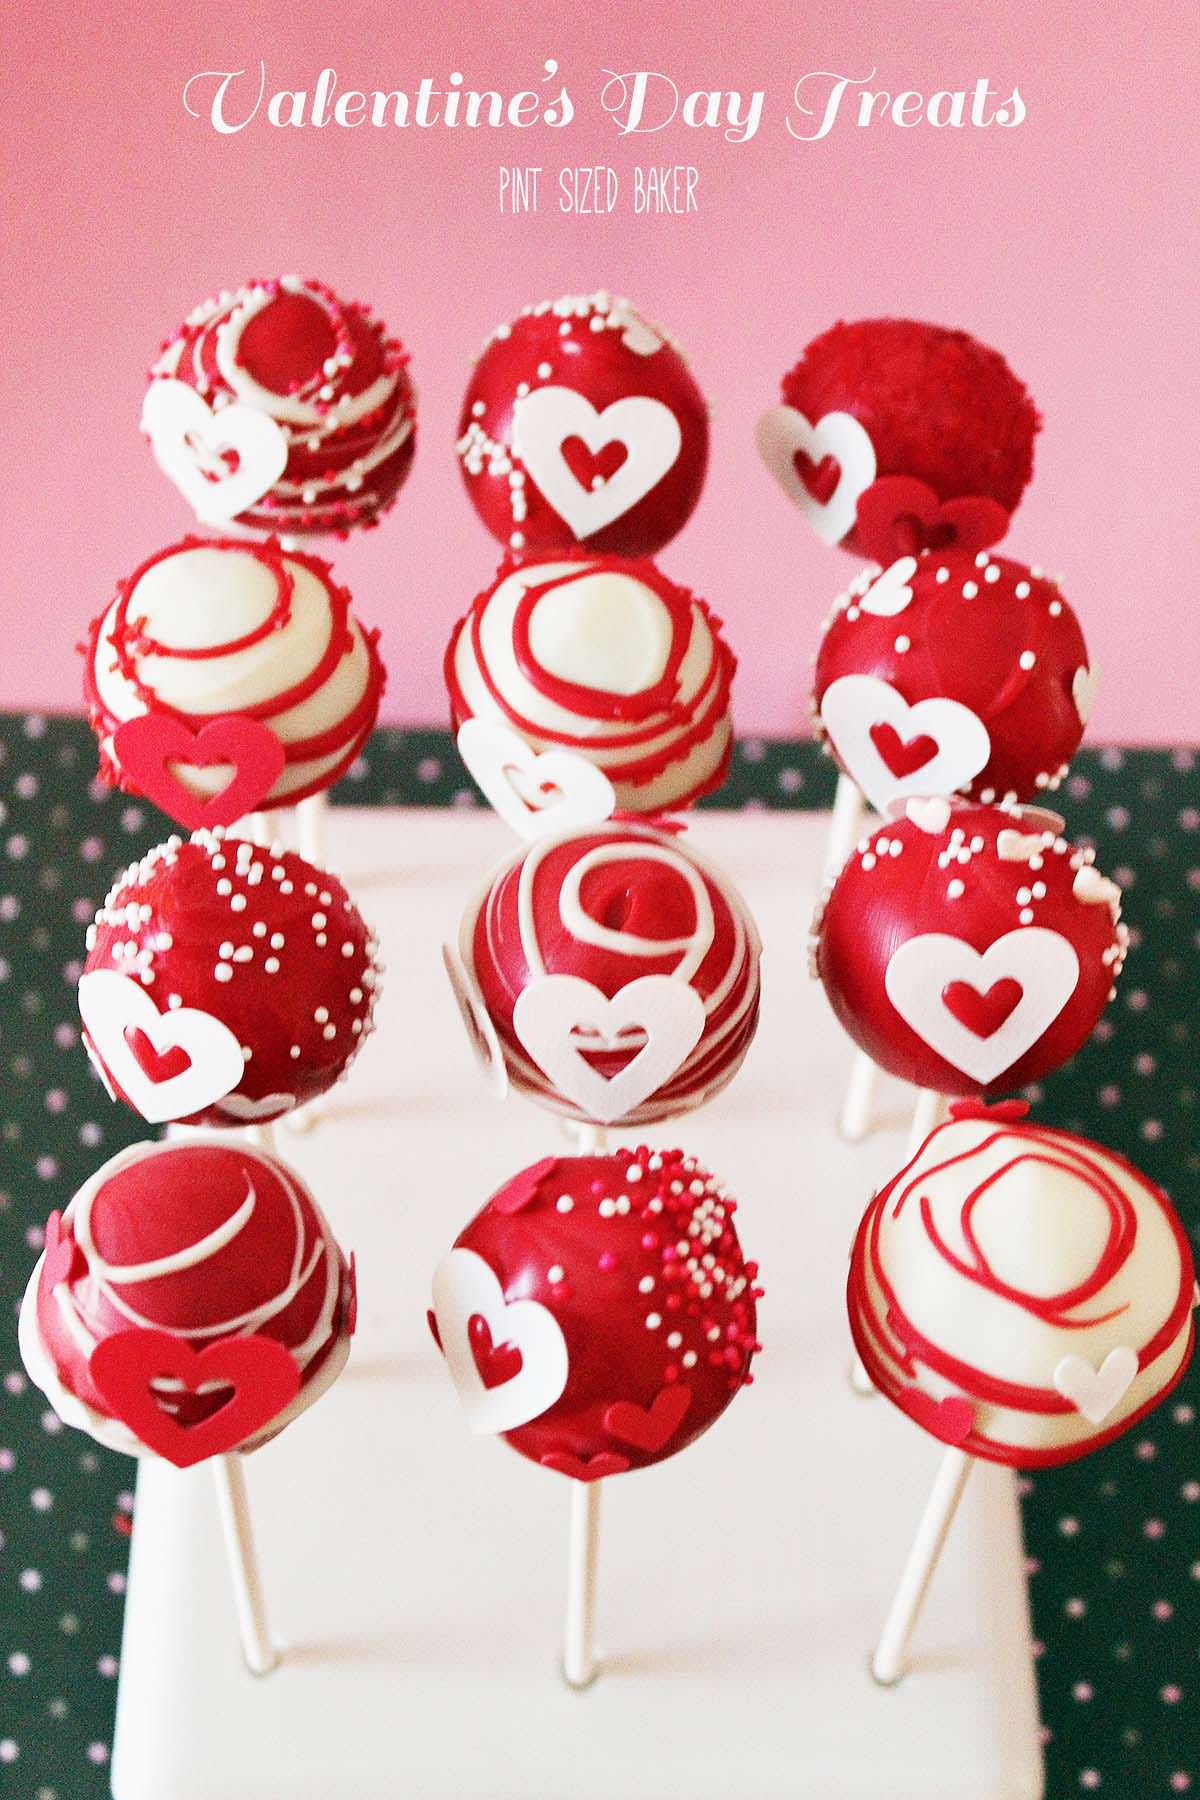 It's a No Bake Valentine Day! My Valentine Treats are perfect to take to school parties, make for your kids, and share with those you love. Hugs and kisses to all!